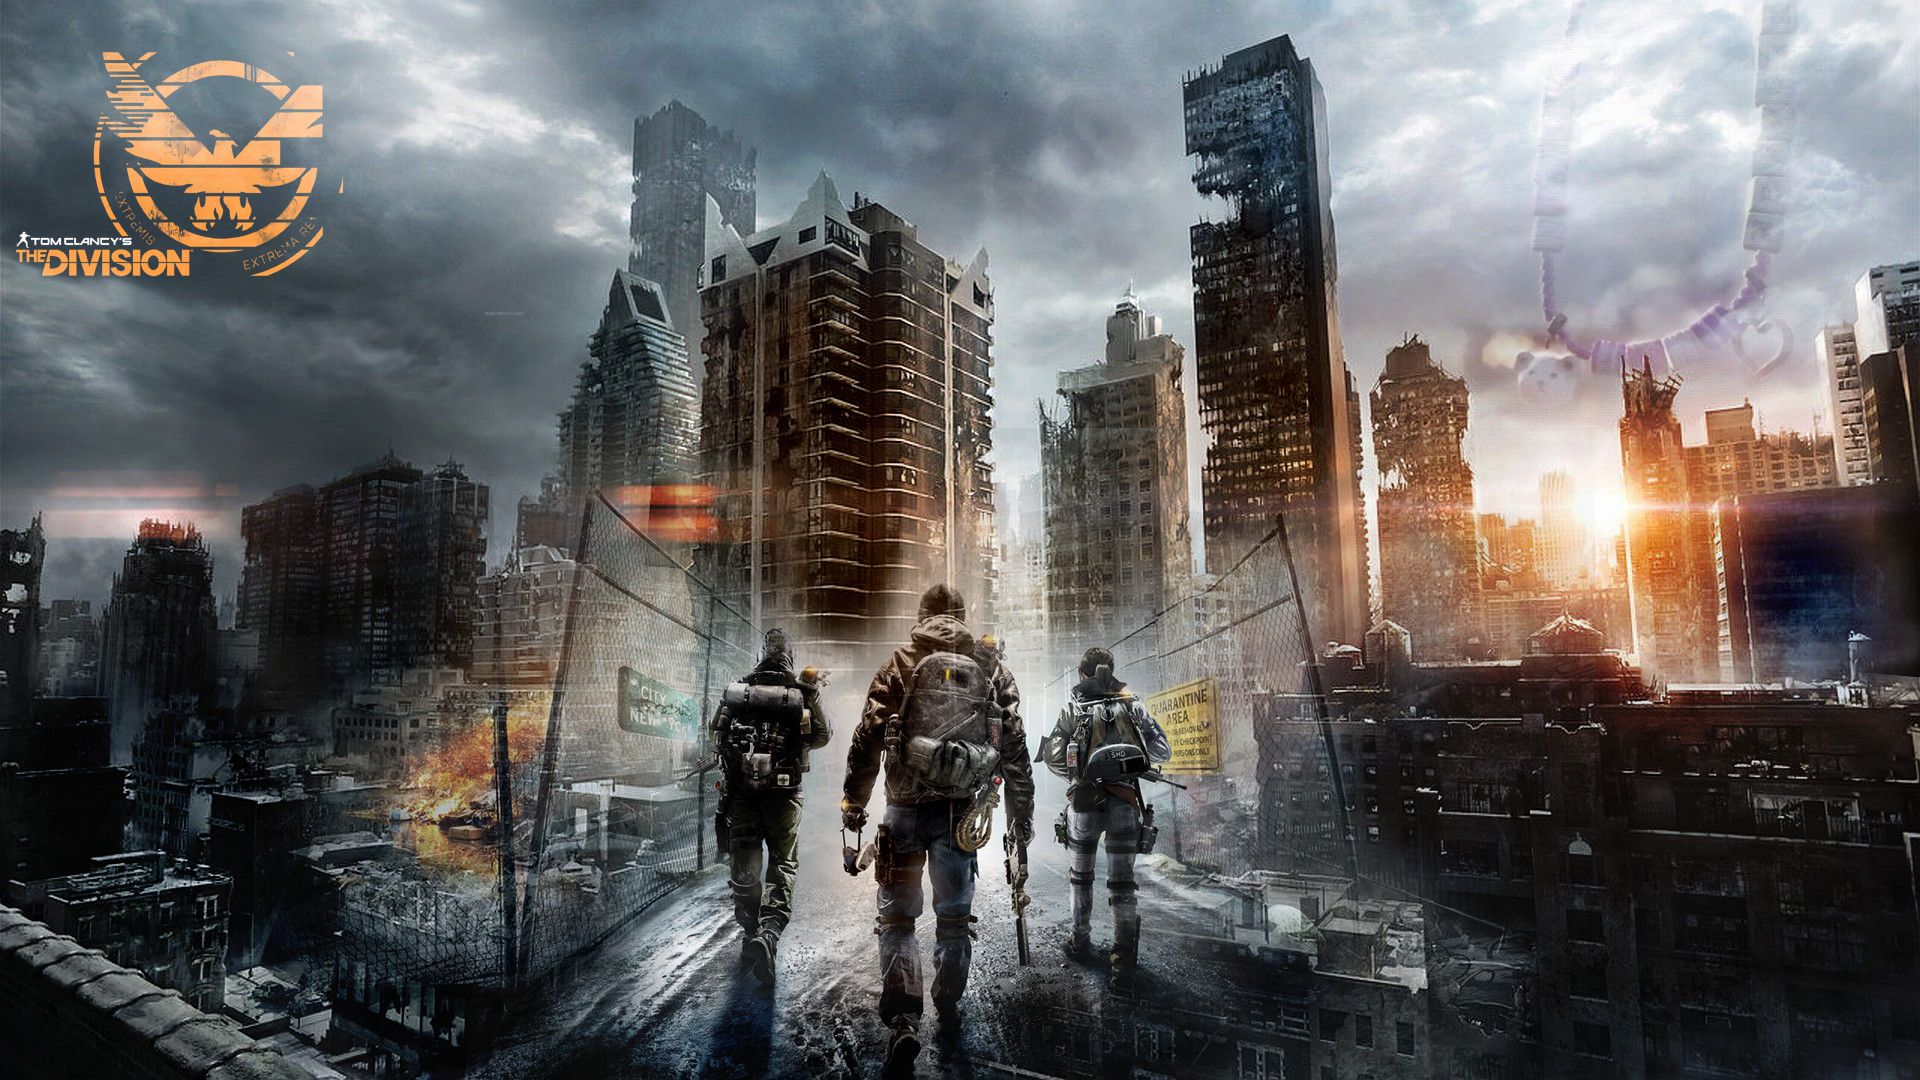 The Division Wallpaper by Germanwallpaper The Division Wallpaper by  Germanwallpaper